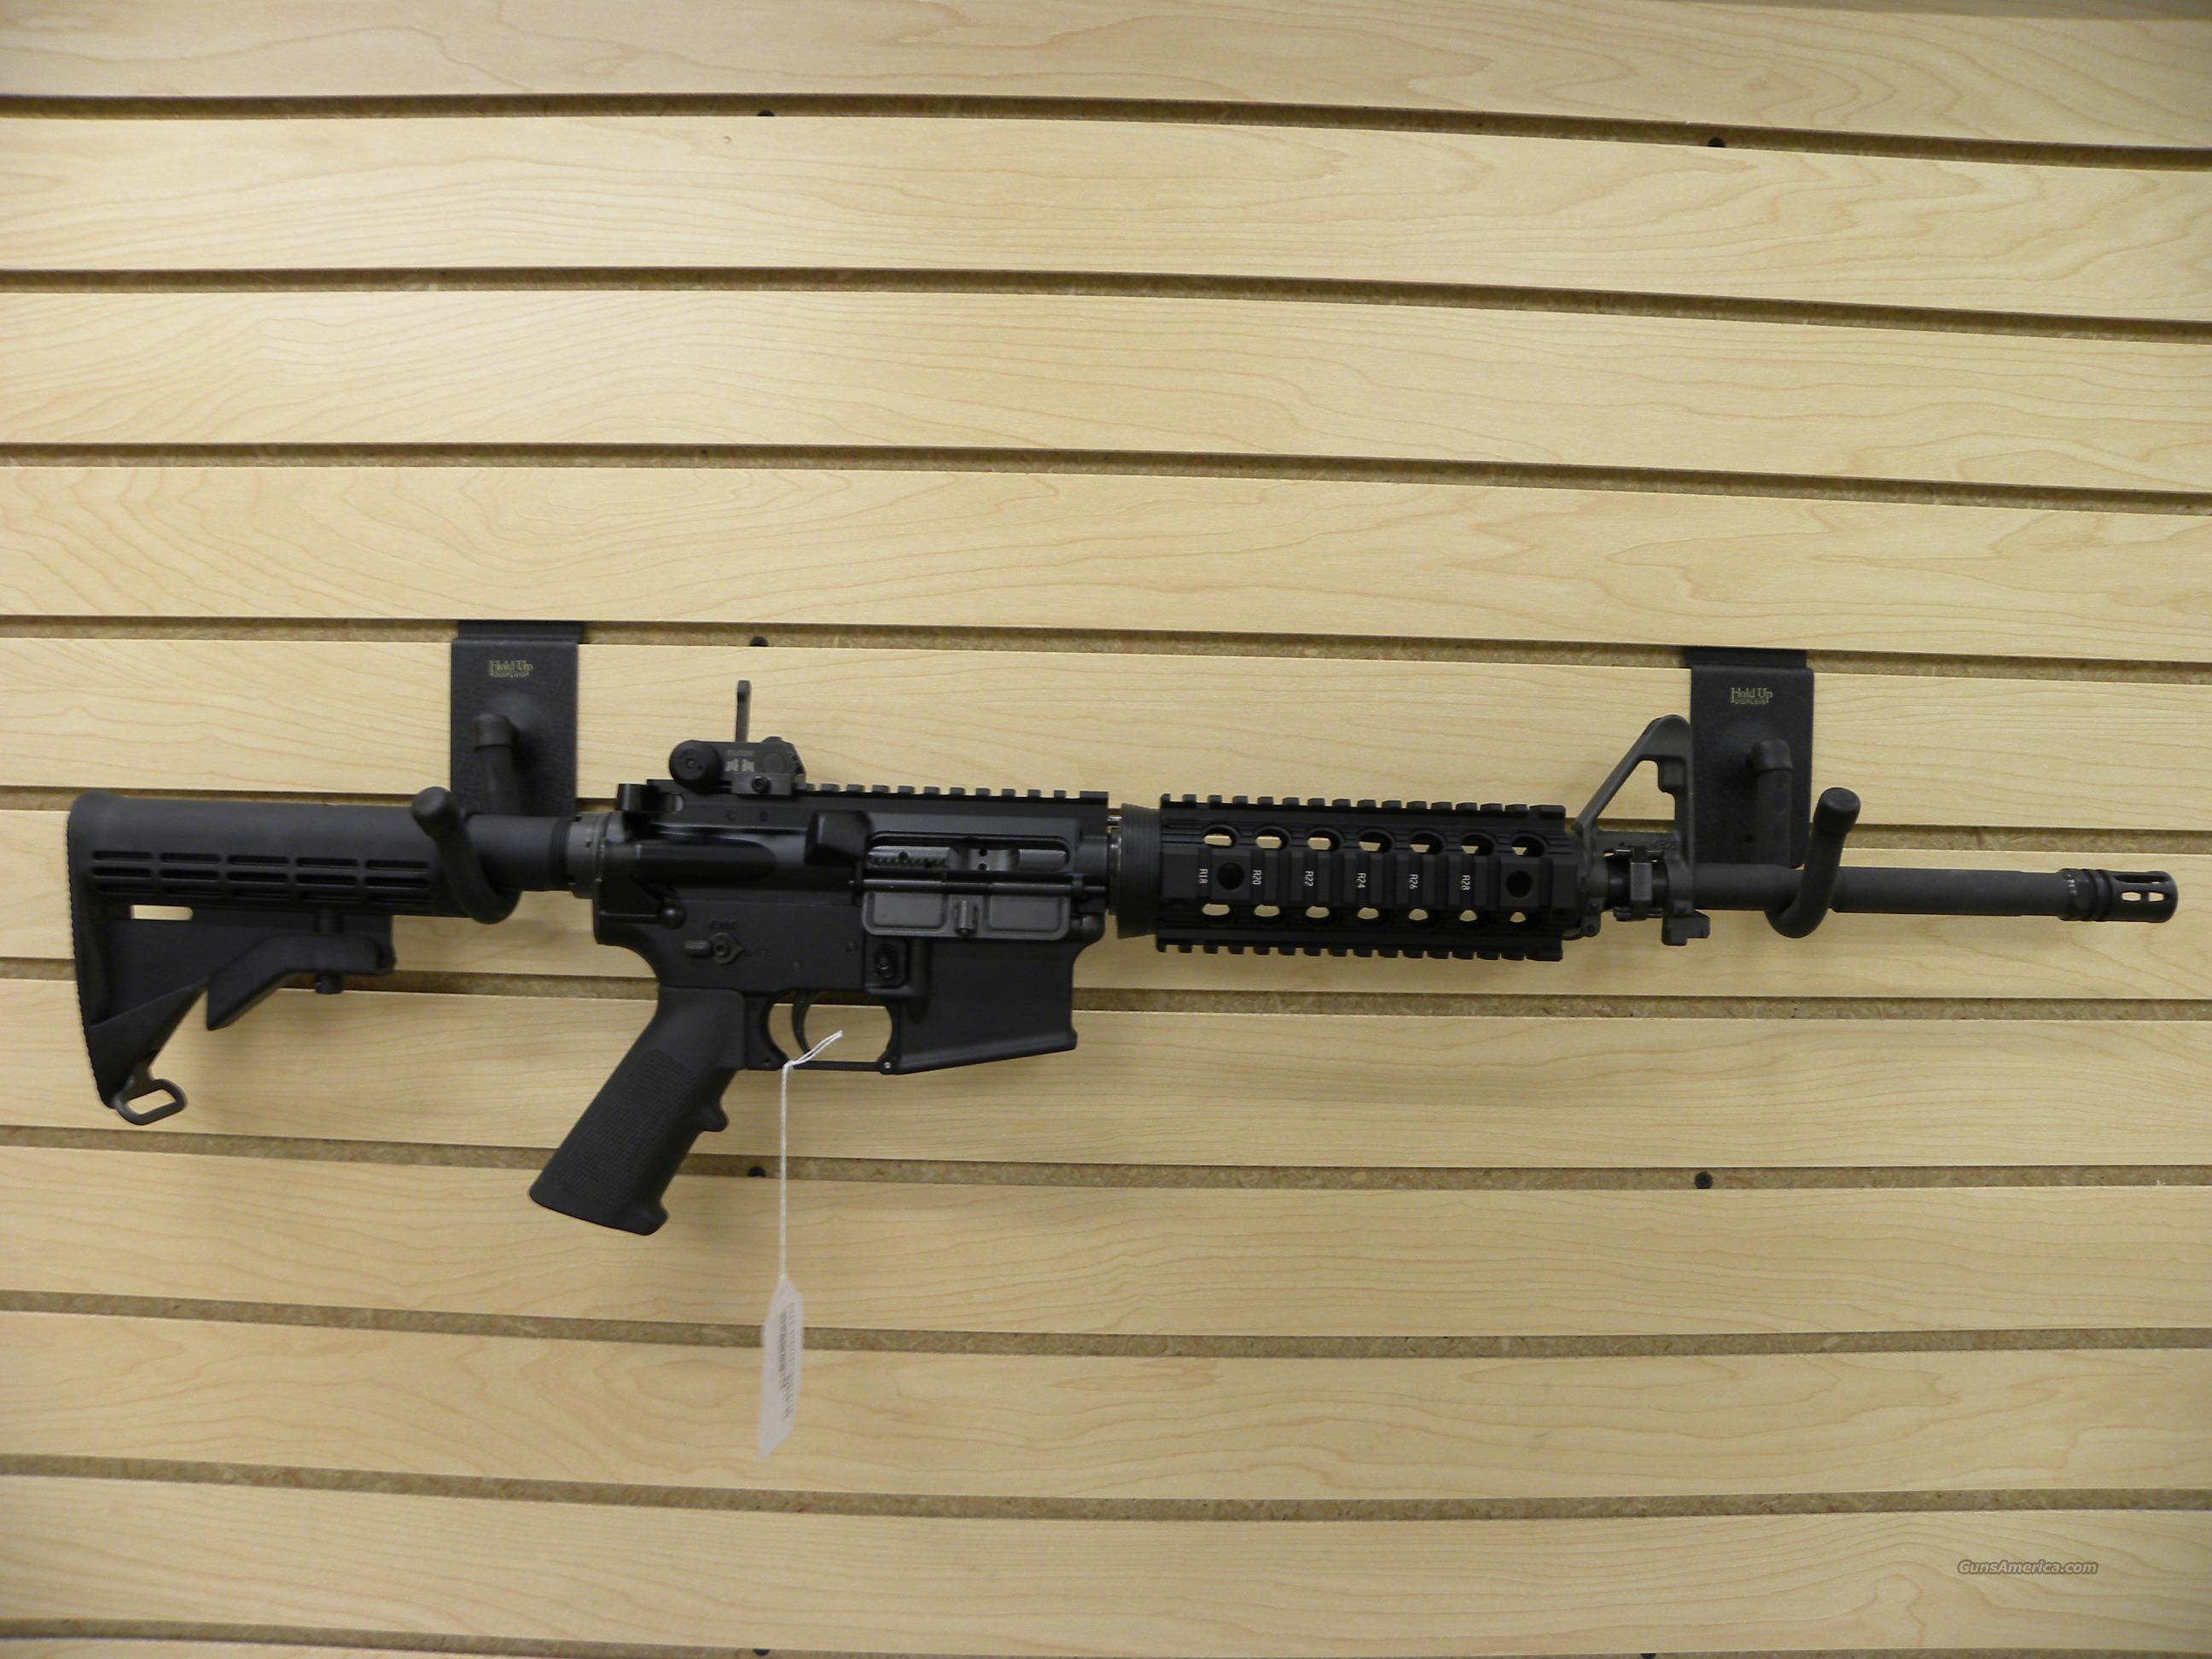 "Colt 6920 M4a1 Socom 5.56 16""bbl Quad Rail w/sight  Guns > Rifles > Colt Military/Tactical Rifles"